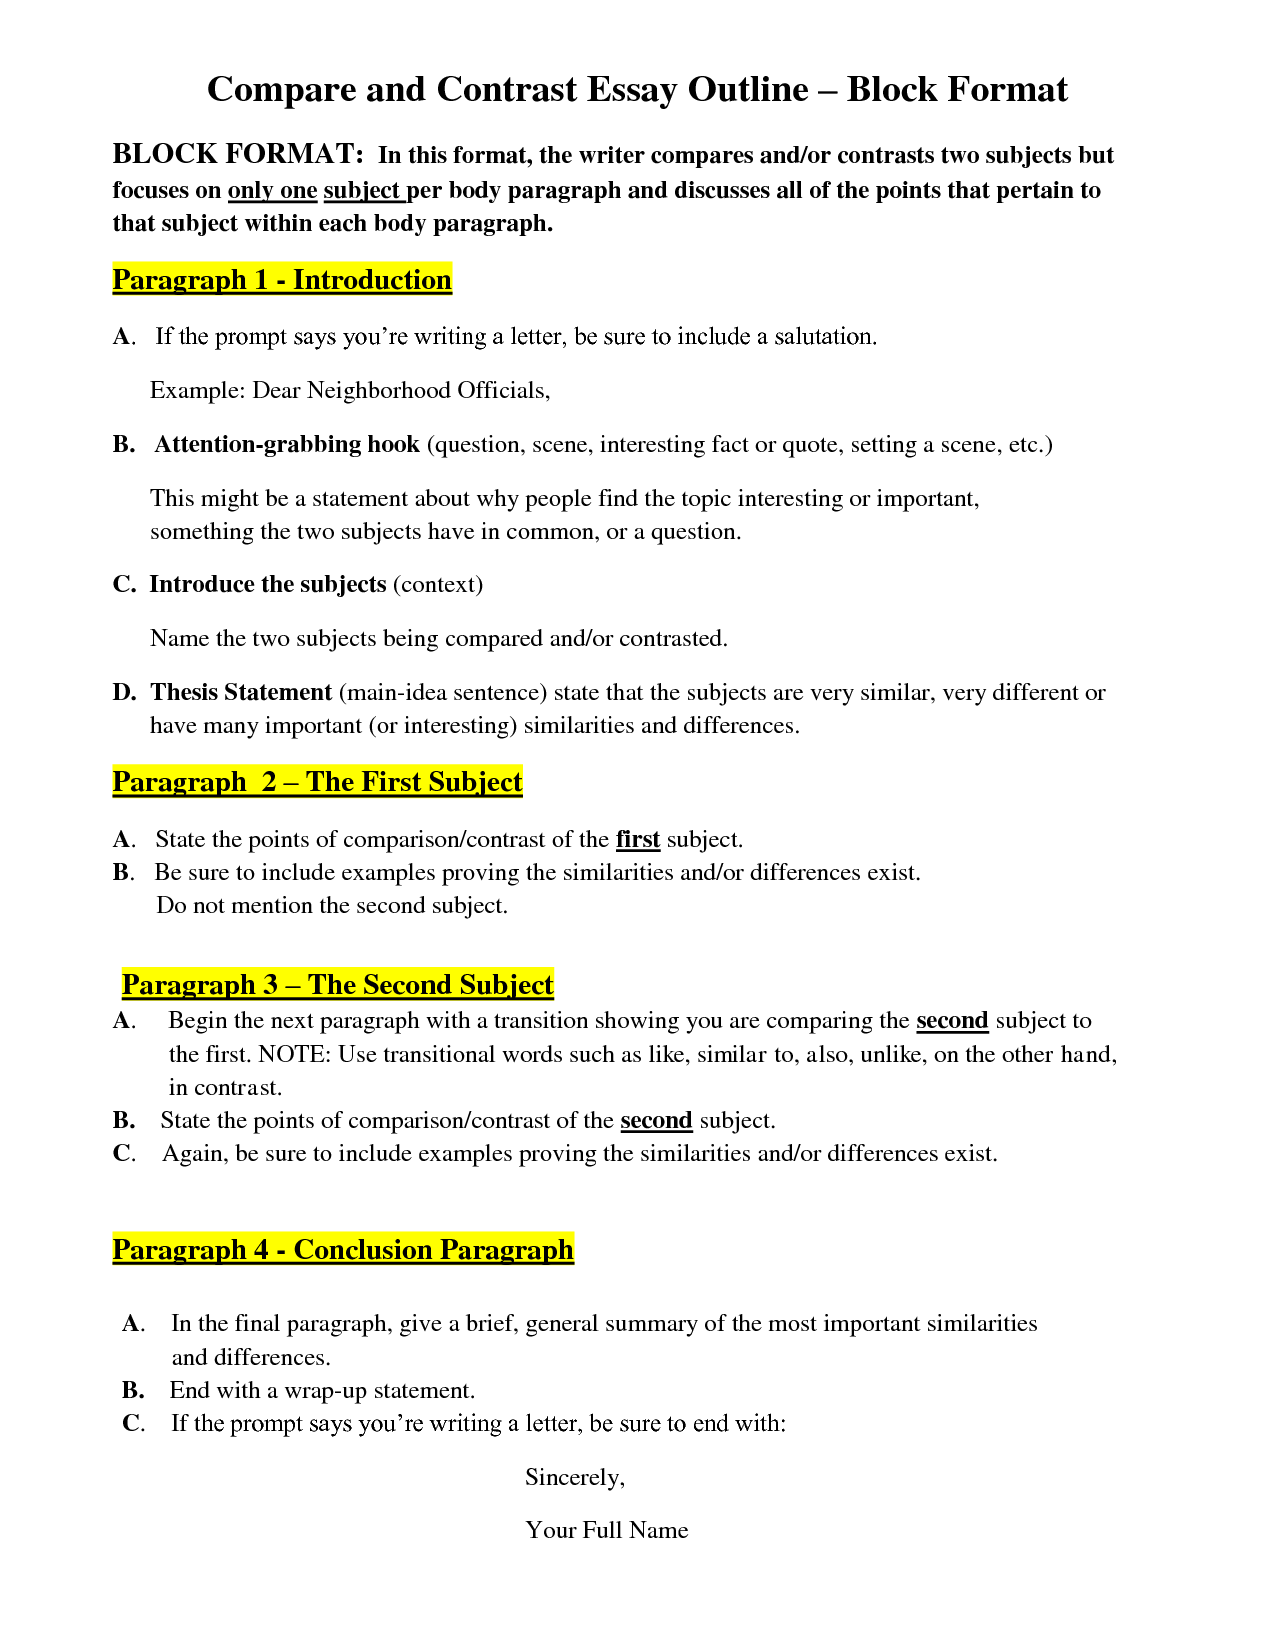 007 compare and contrast Google Search Essay layout, Essay